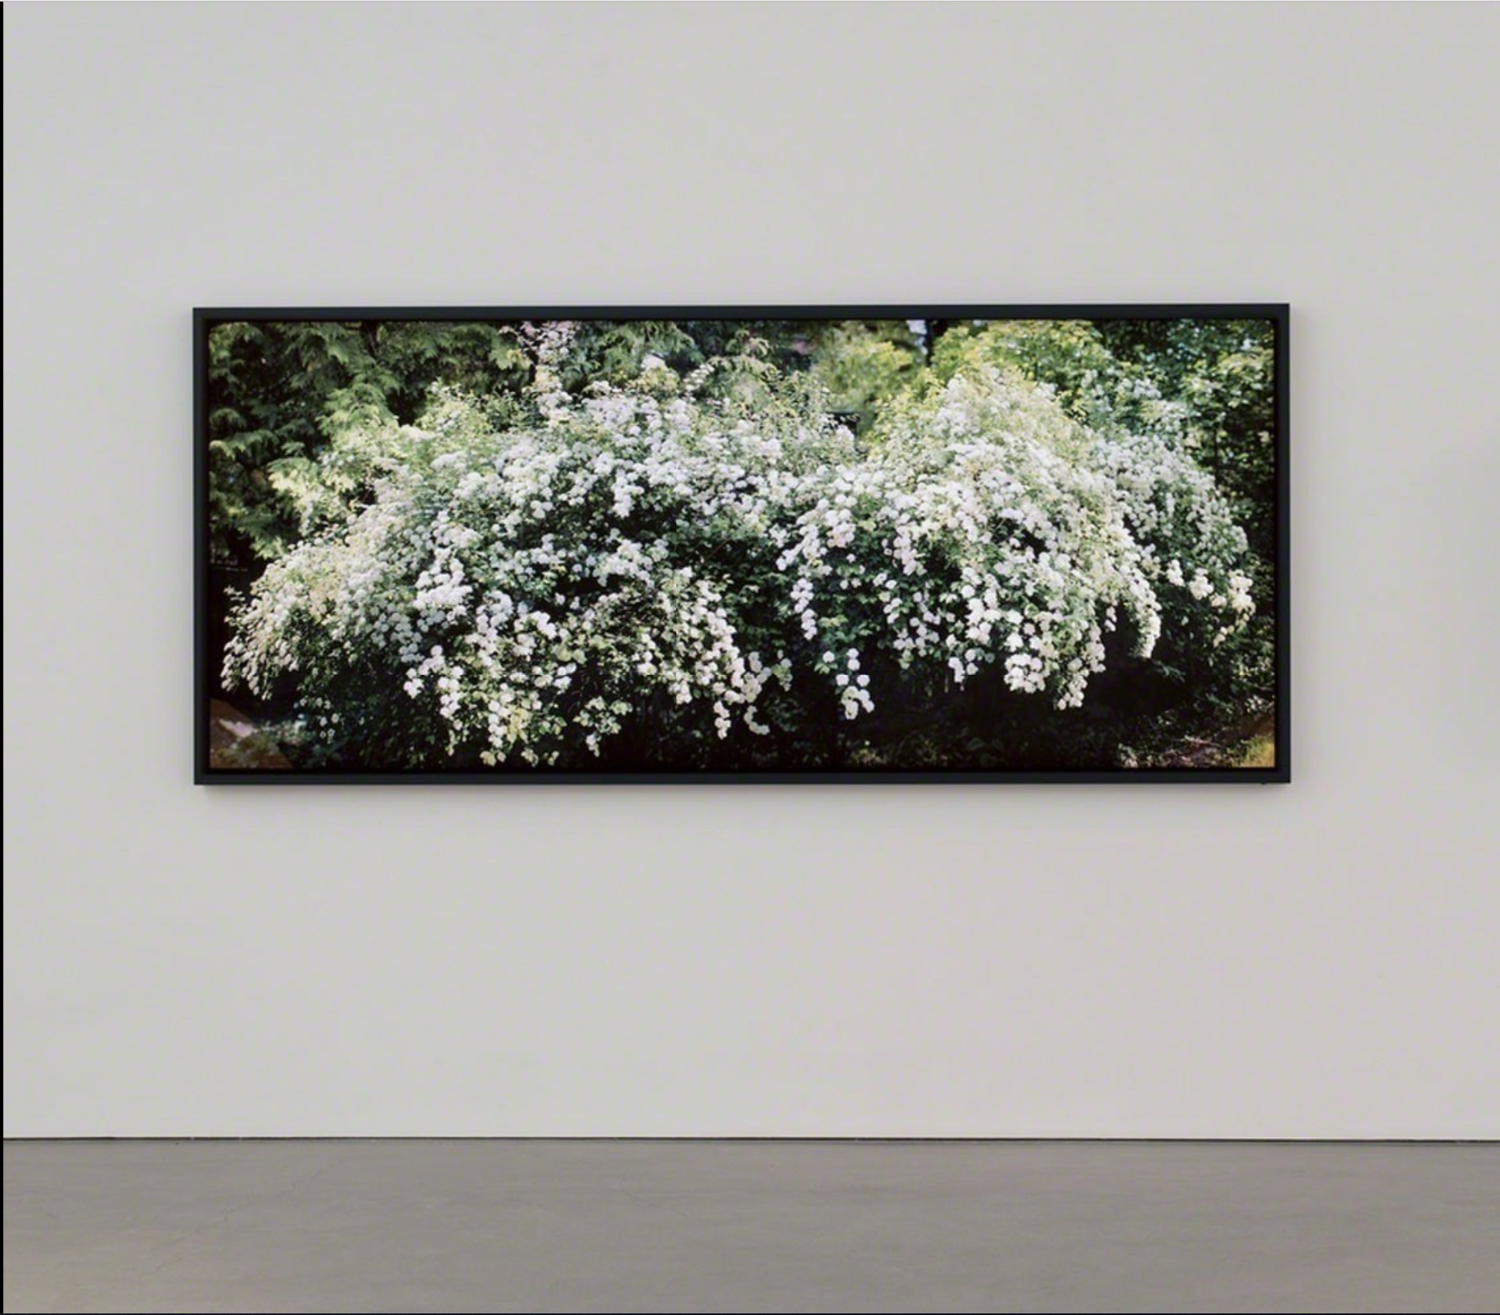 "Spirea prunifolia , Ed 2/3, Bridal Wreath with Effects of Sunlight, 2014, Archival Inkjet Type Print displayed in LED Lightbox, 42"" × 160"""